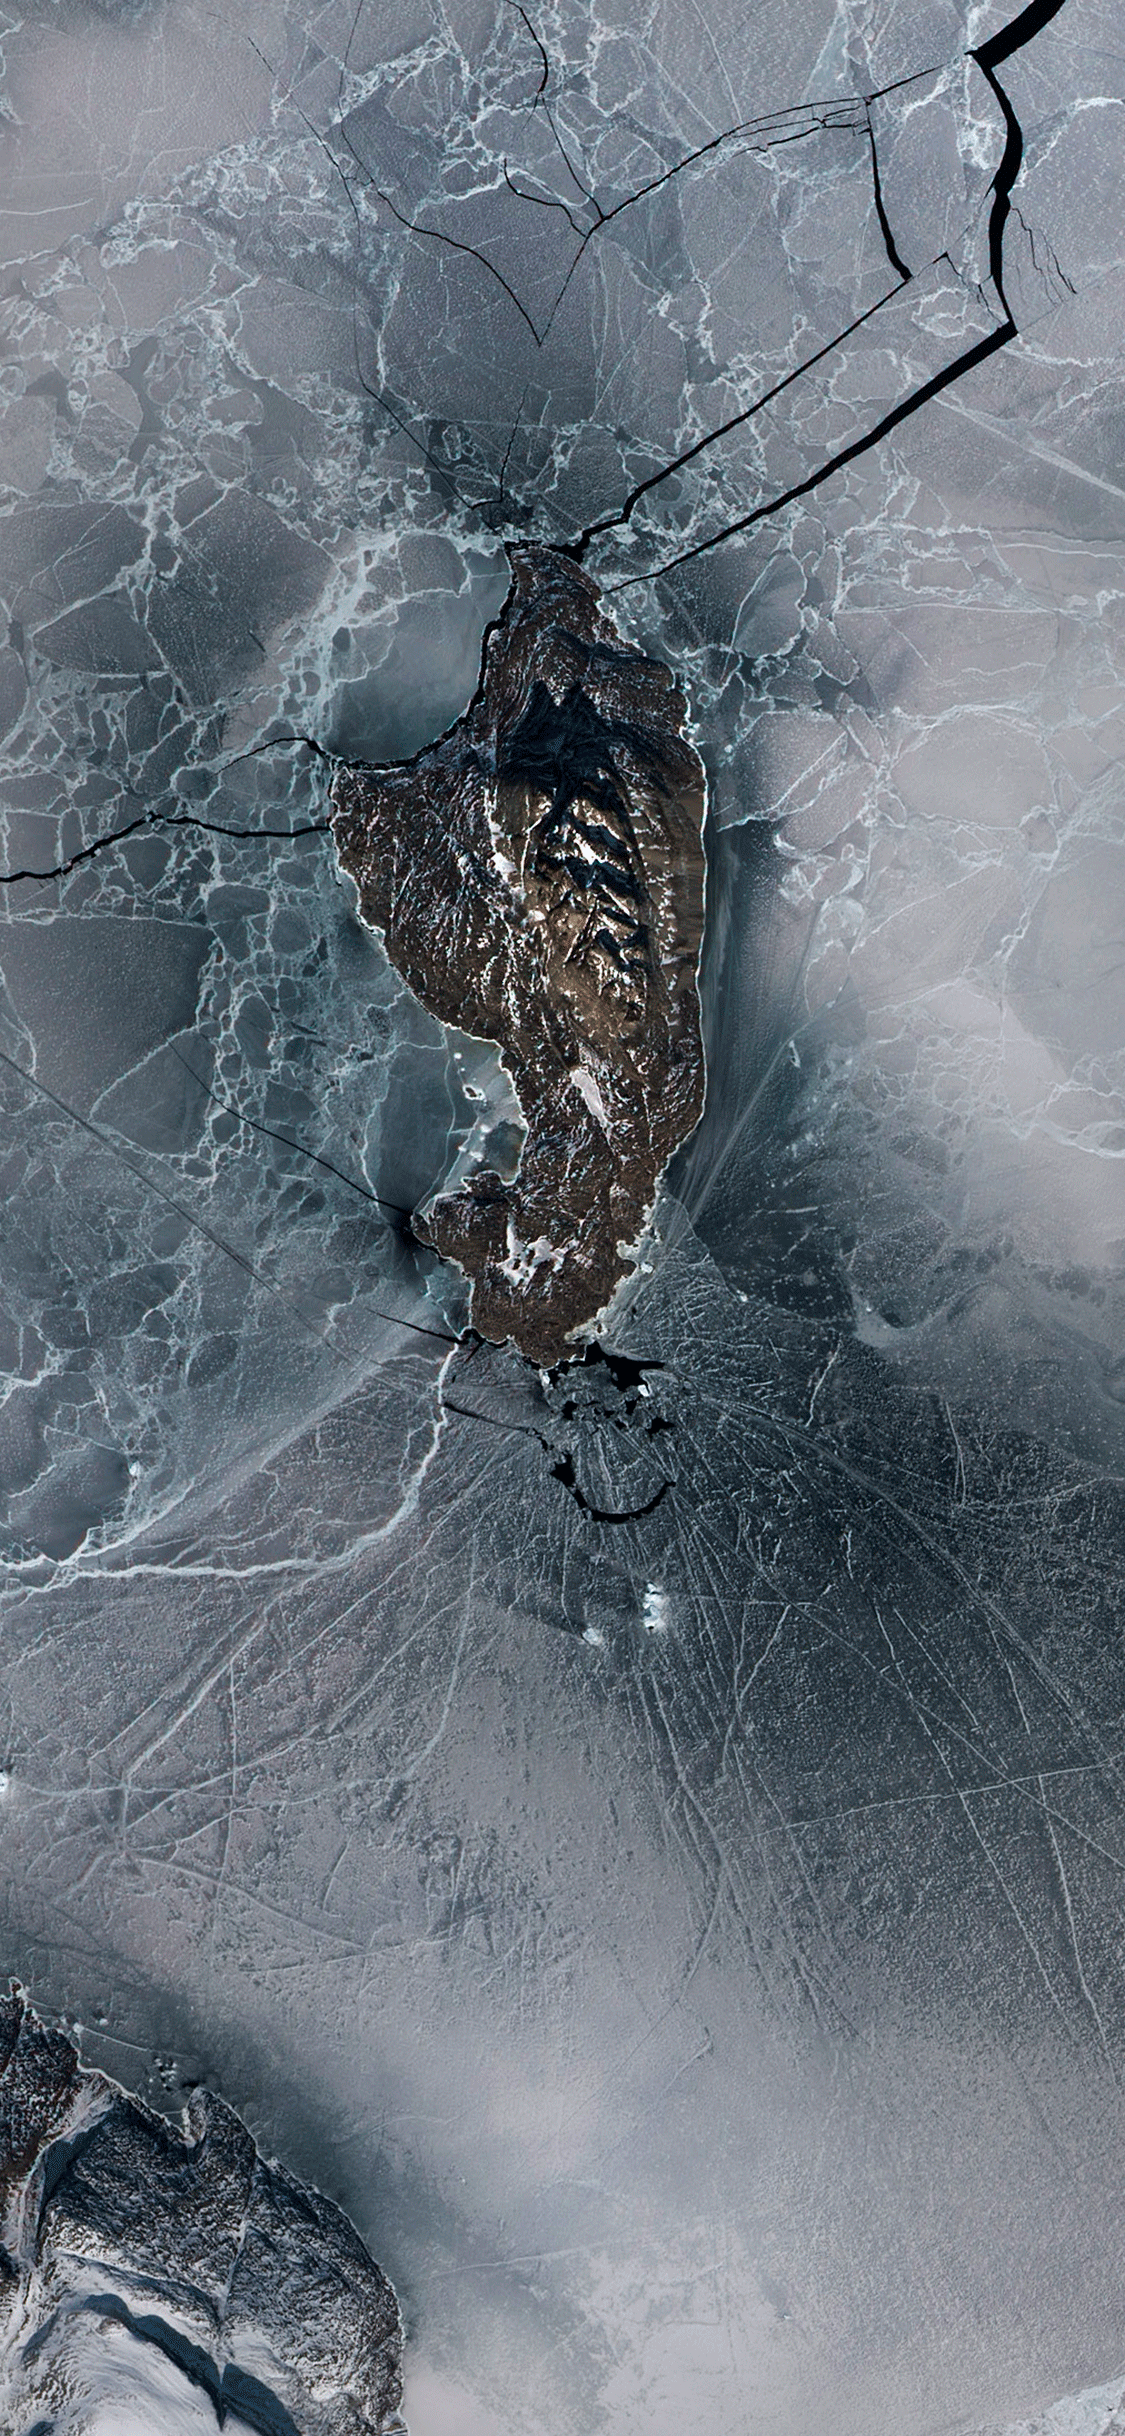 iPhone wallpaper photos satellites uumannaq island Satellite images